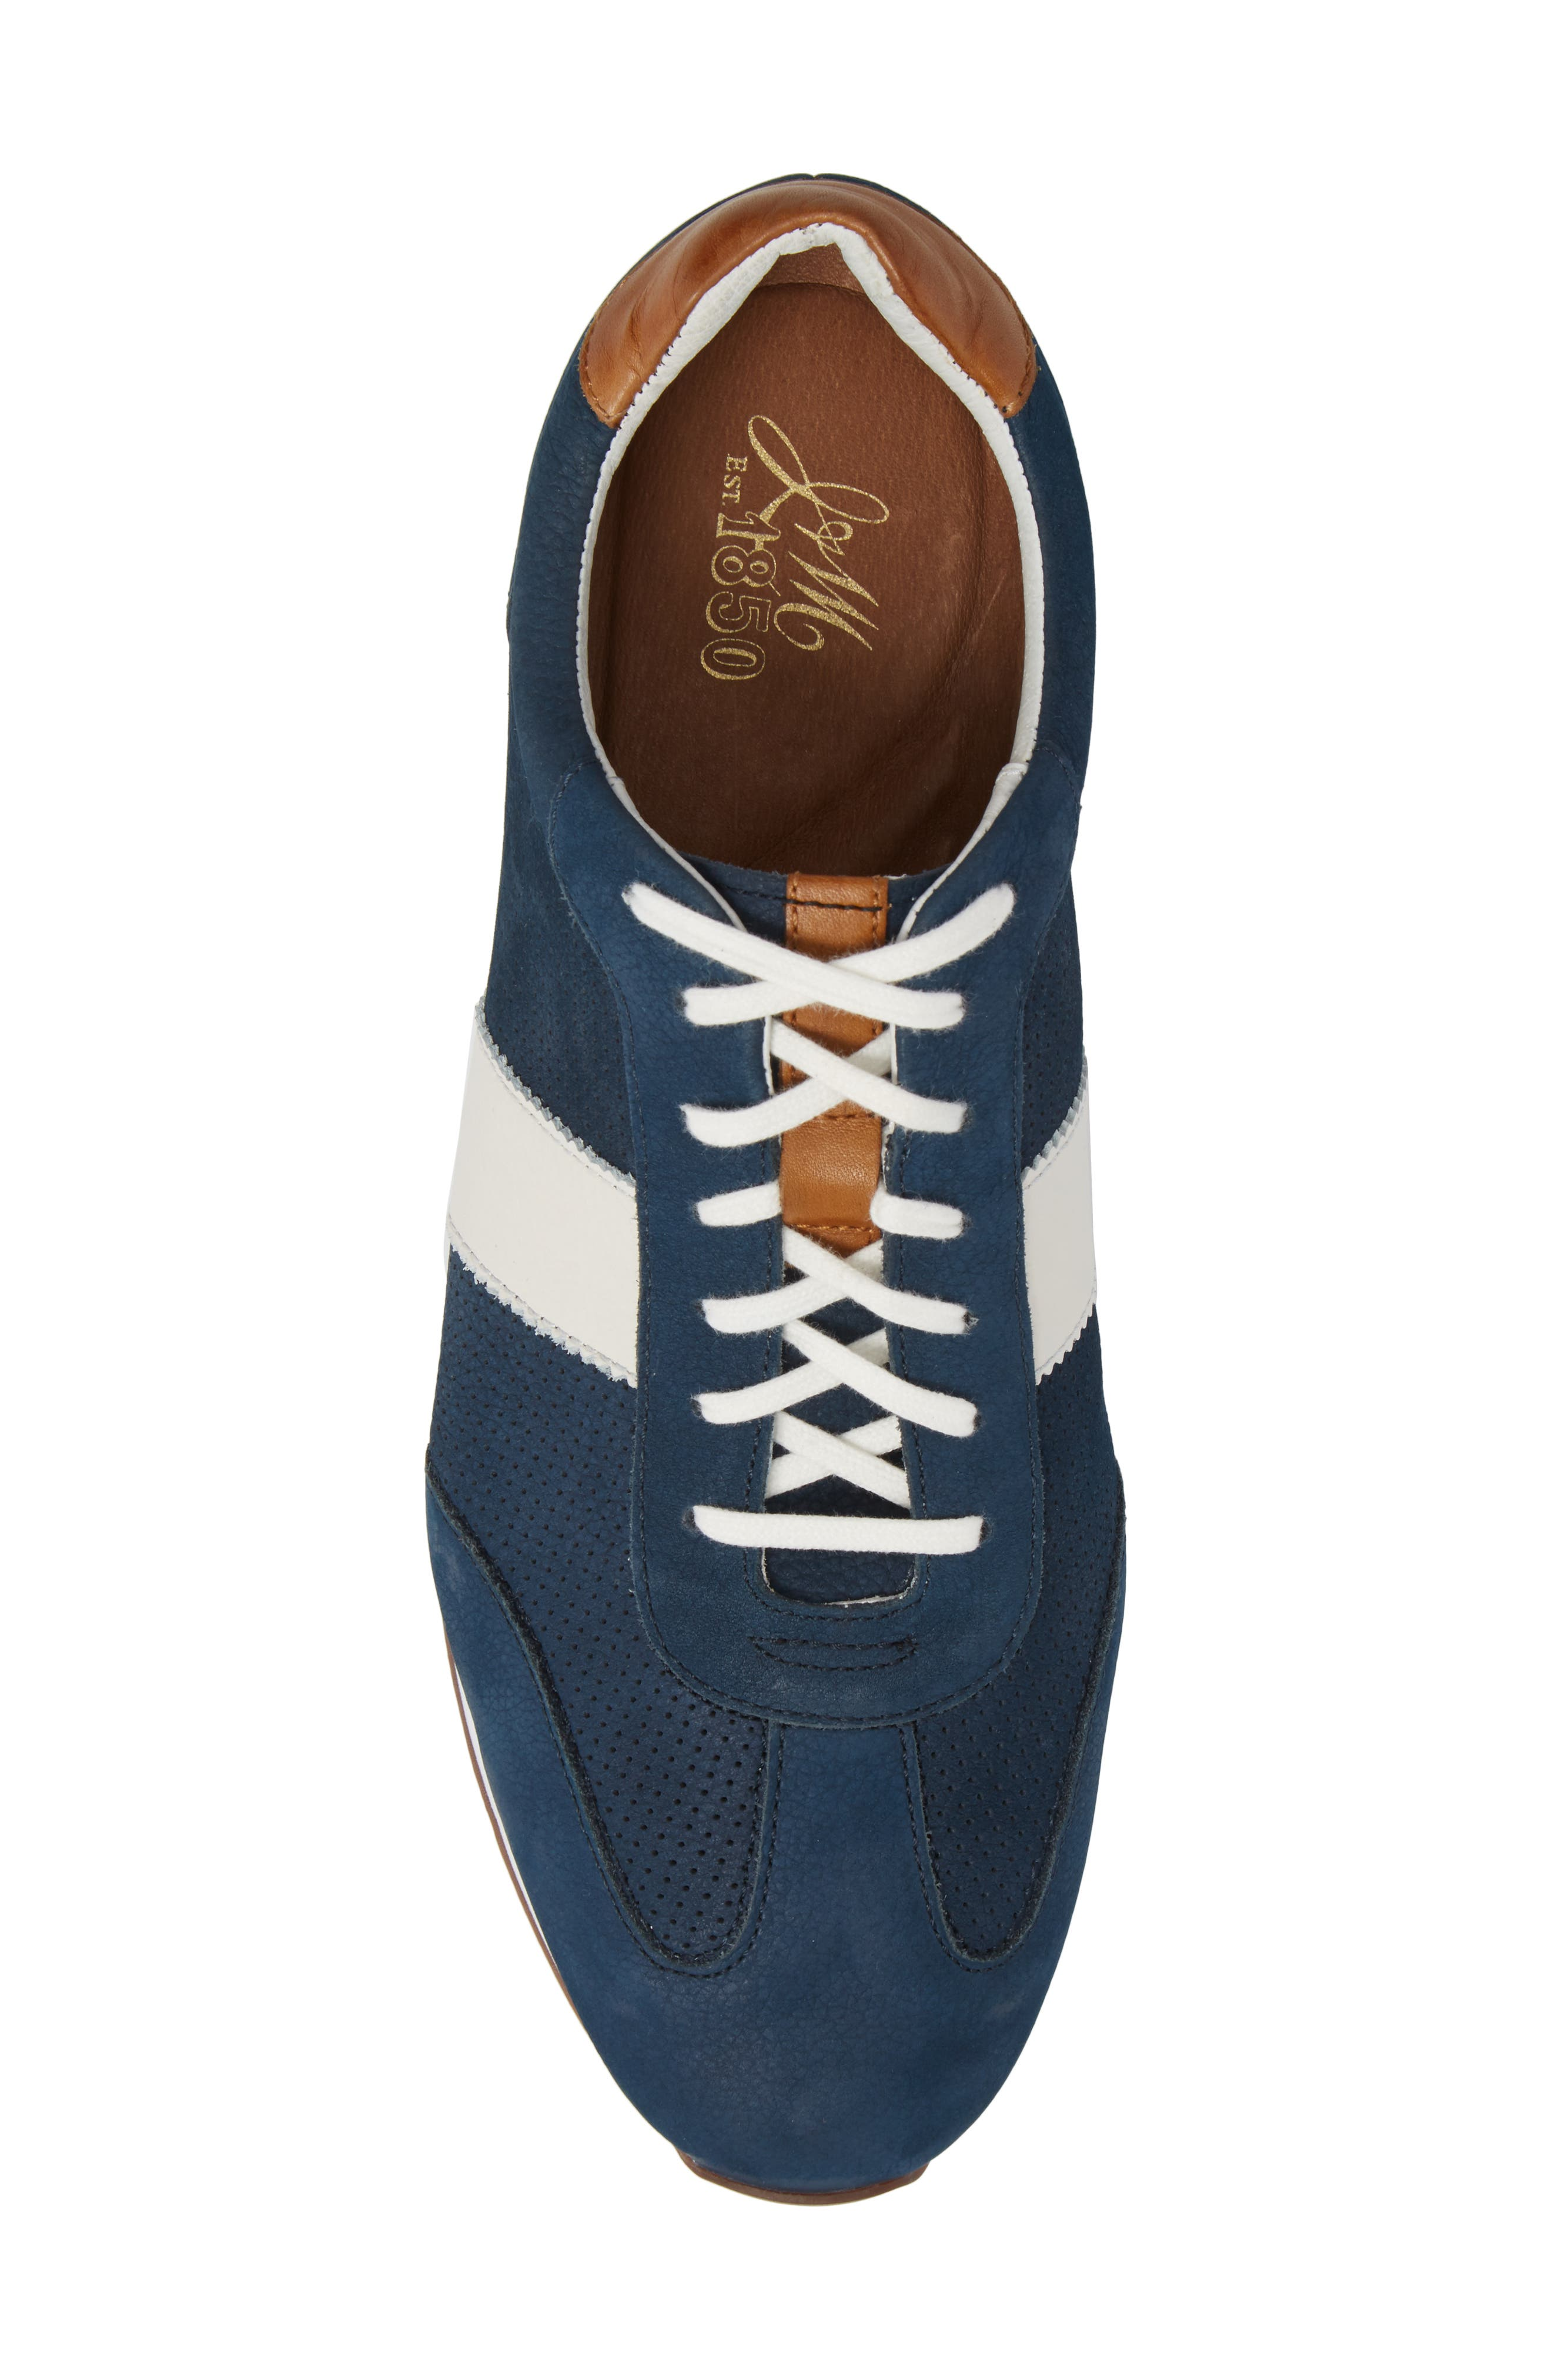 Malek Perforated Low Top Sneaker,                             Alternate thumbnail 5, color,                             Navy Nubuck Leather